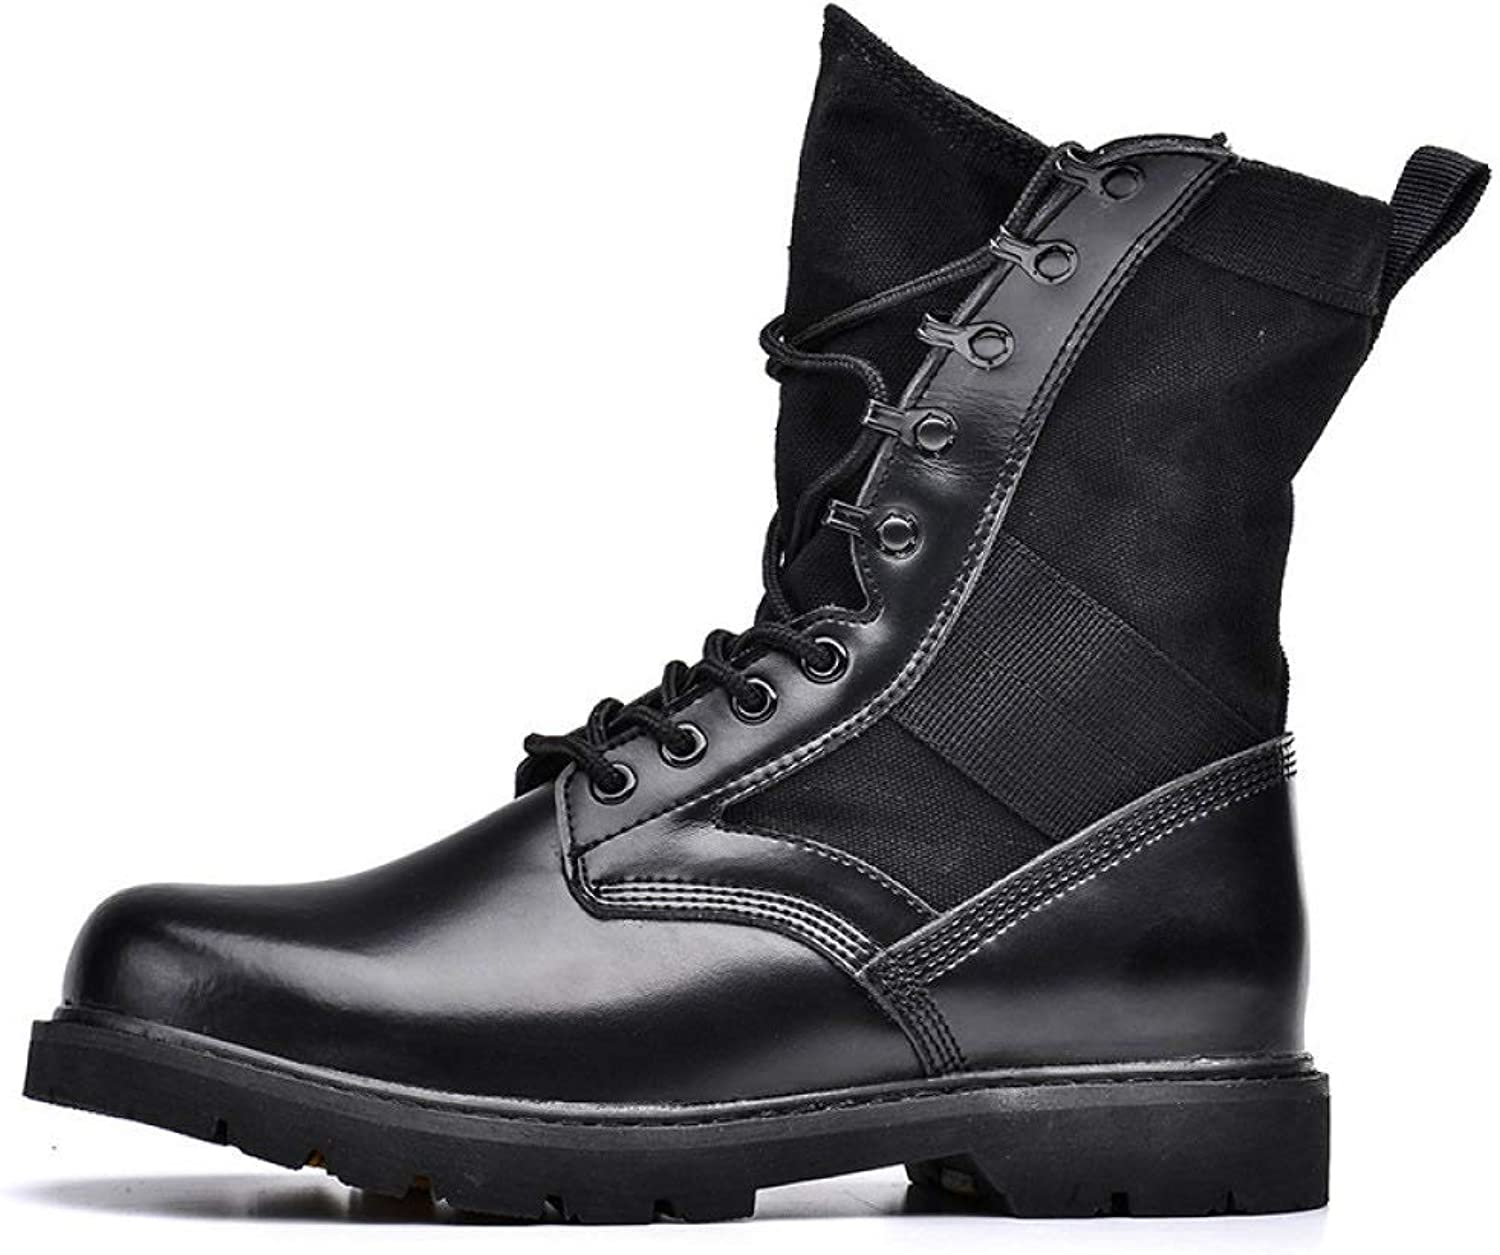 HWG-GAOYZ shoes Men's Martin Boots Ankle Footwear Autumn Winter Outdoor Desert Military Leather Boots Non-slip Breathable,Black-39